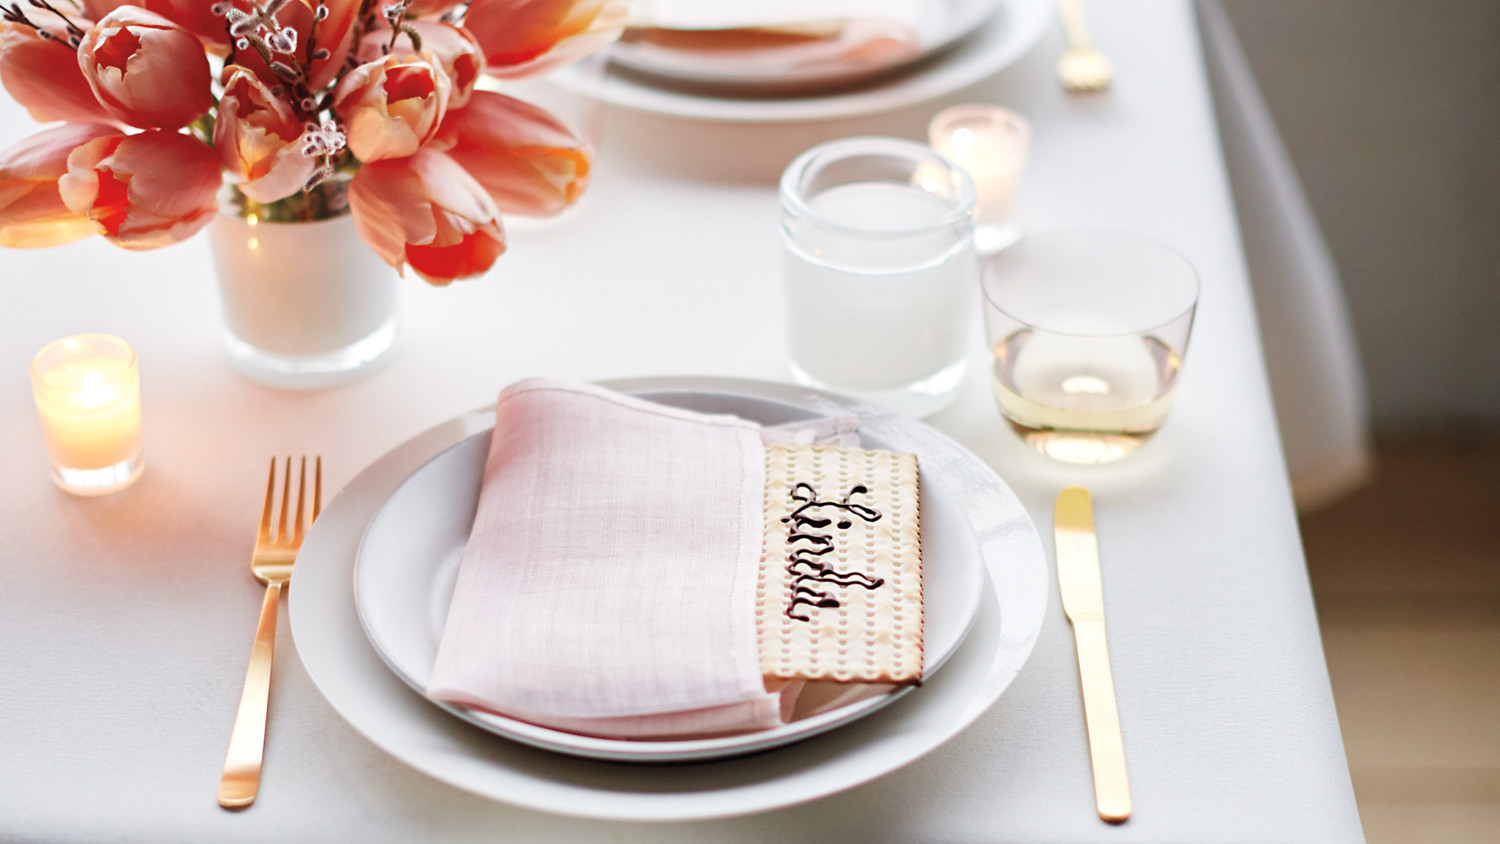 15 Passover Entertaining Ideas For The Whole Family